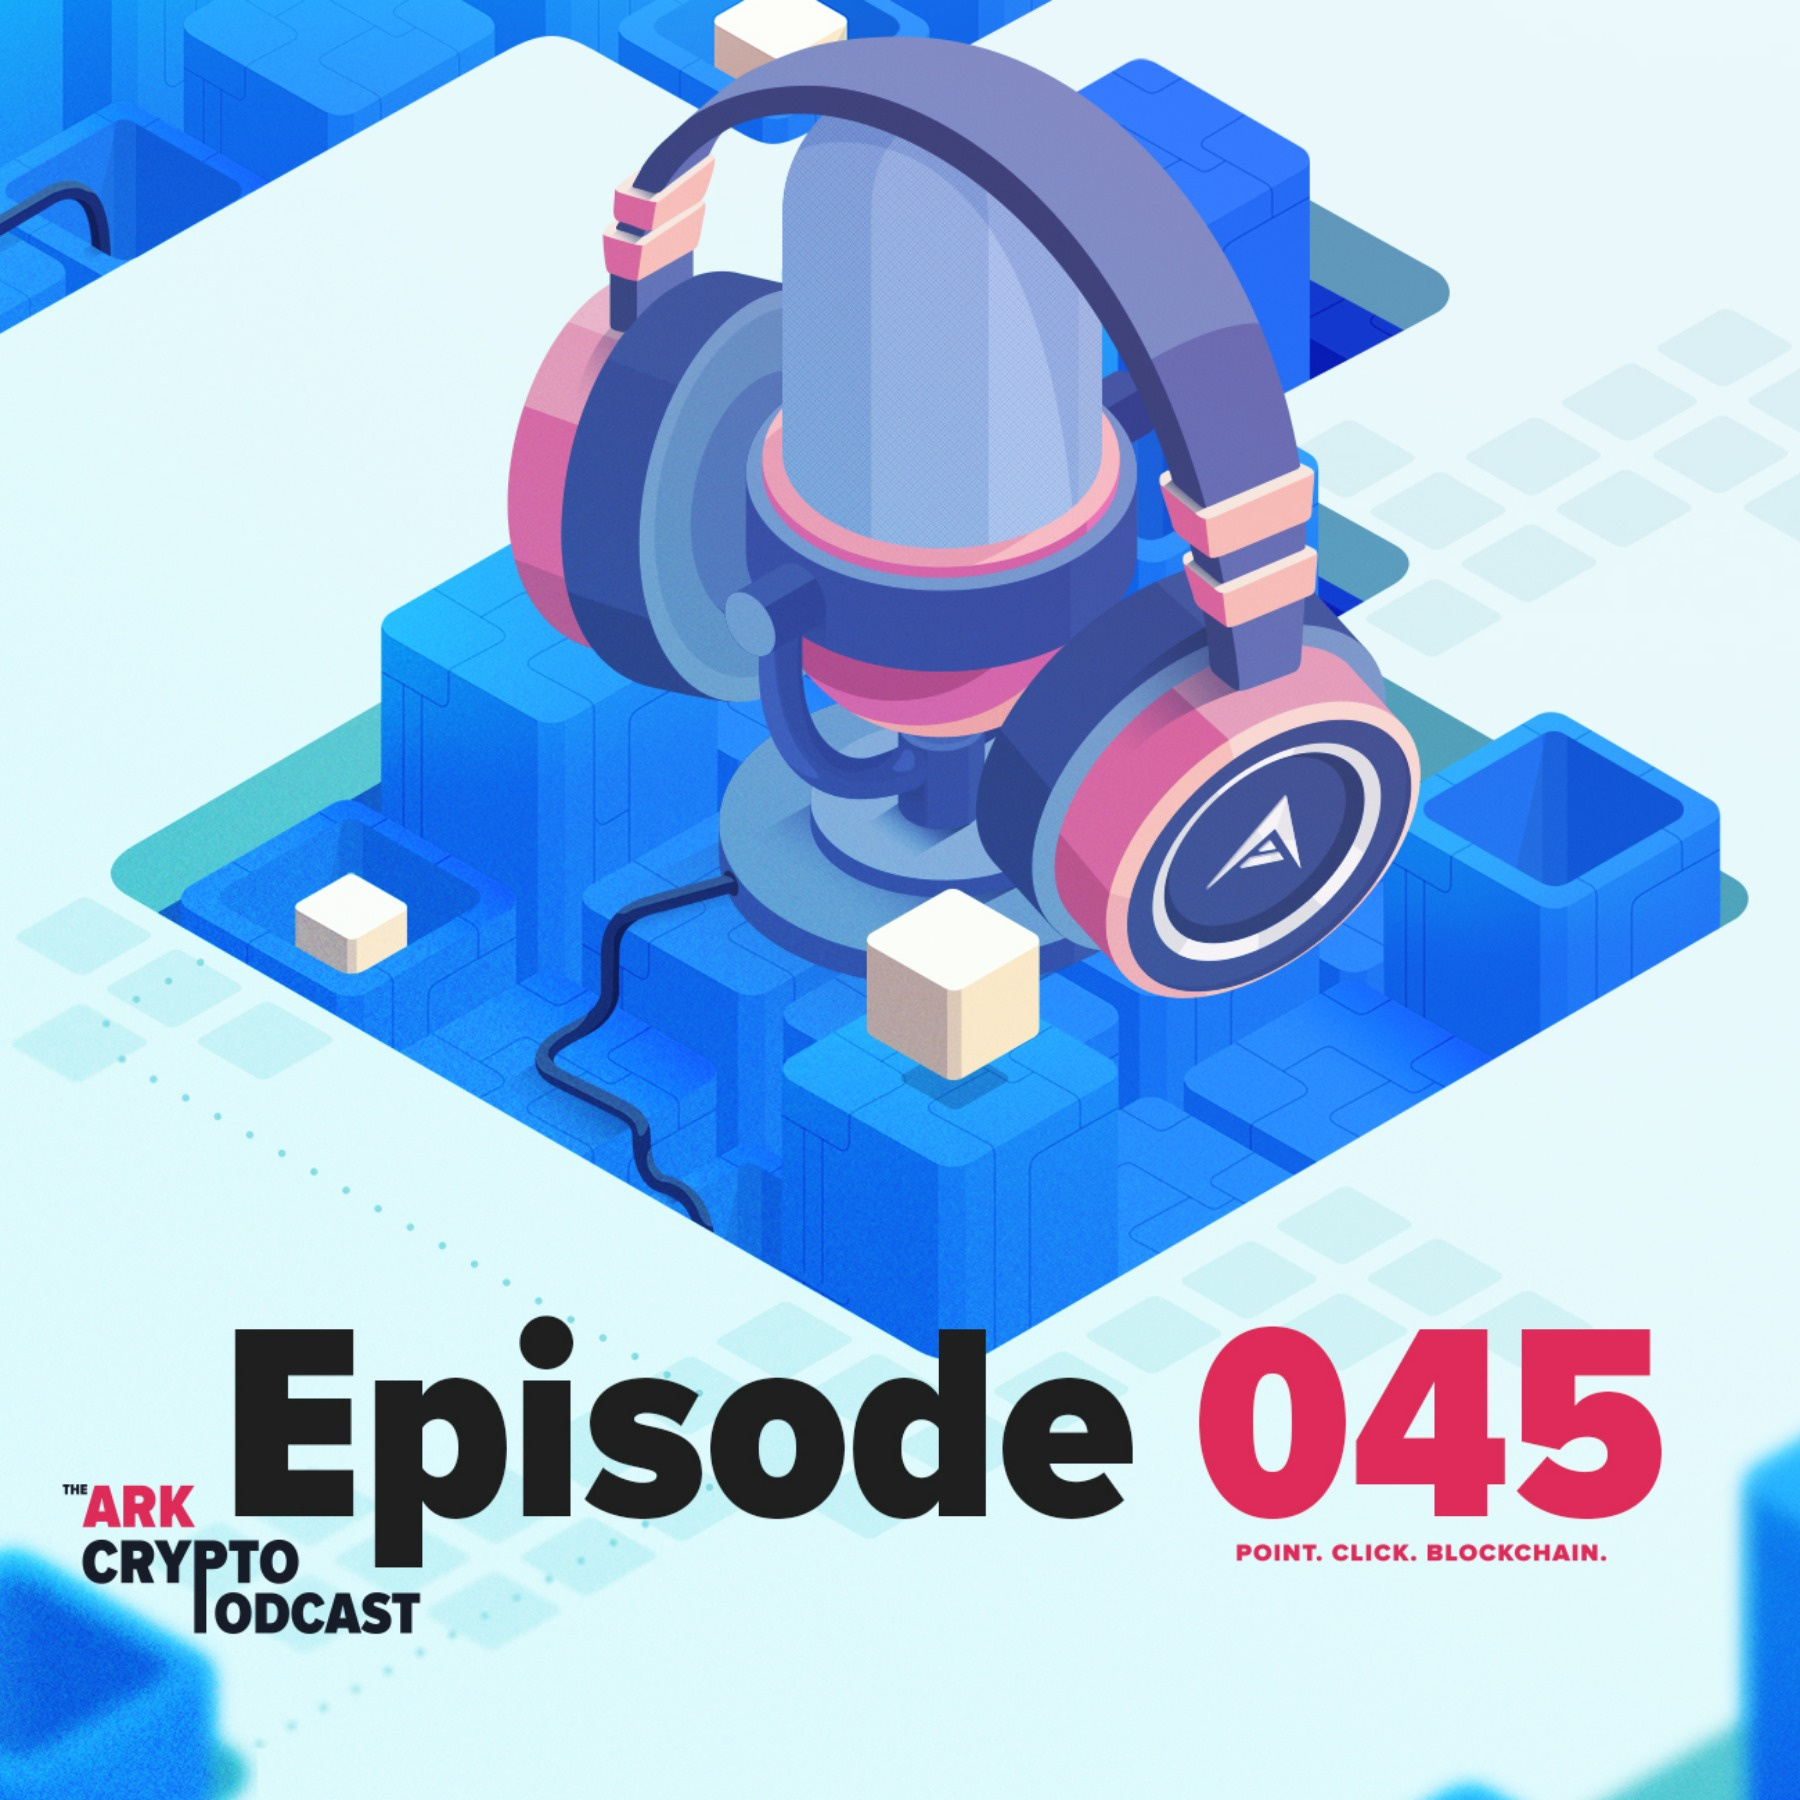 ARK Crypto Podcast #045 - Interview with Delegate Mak